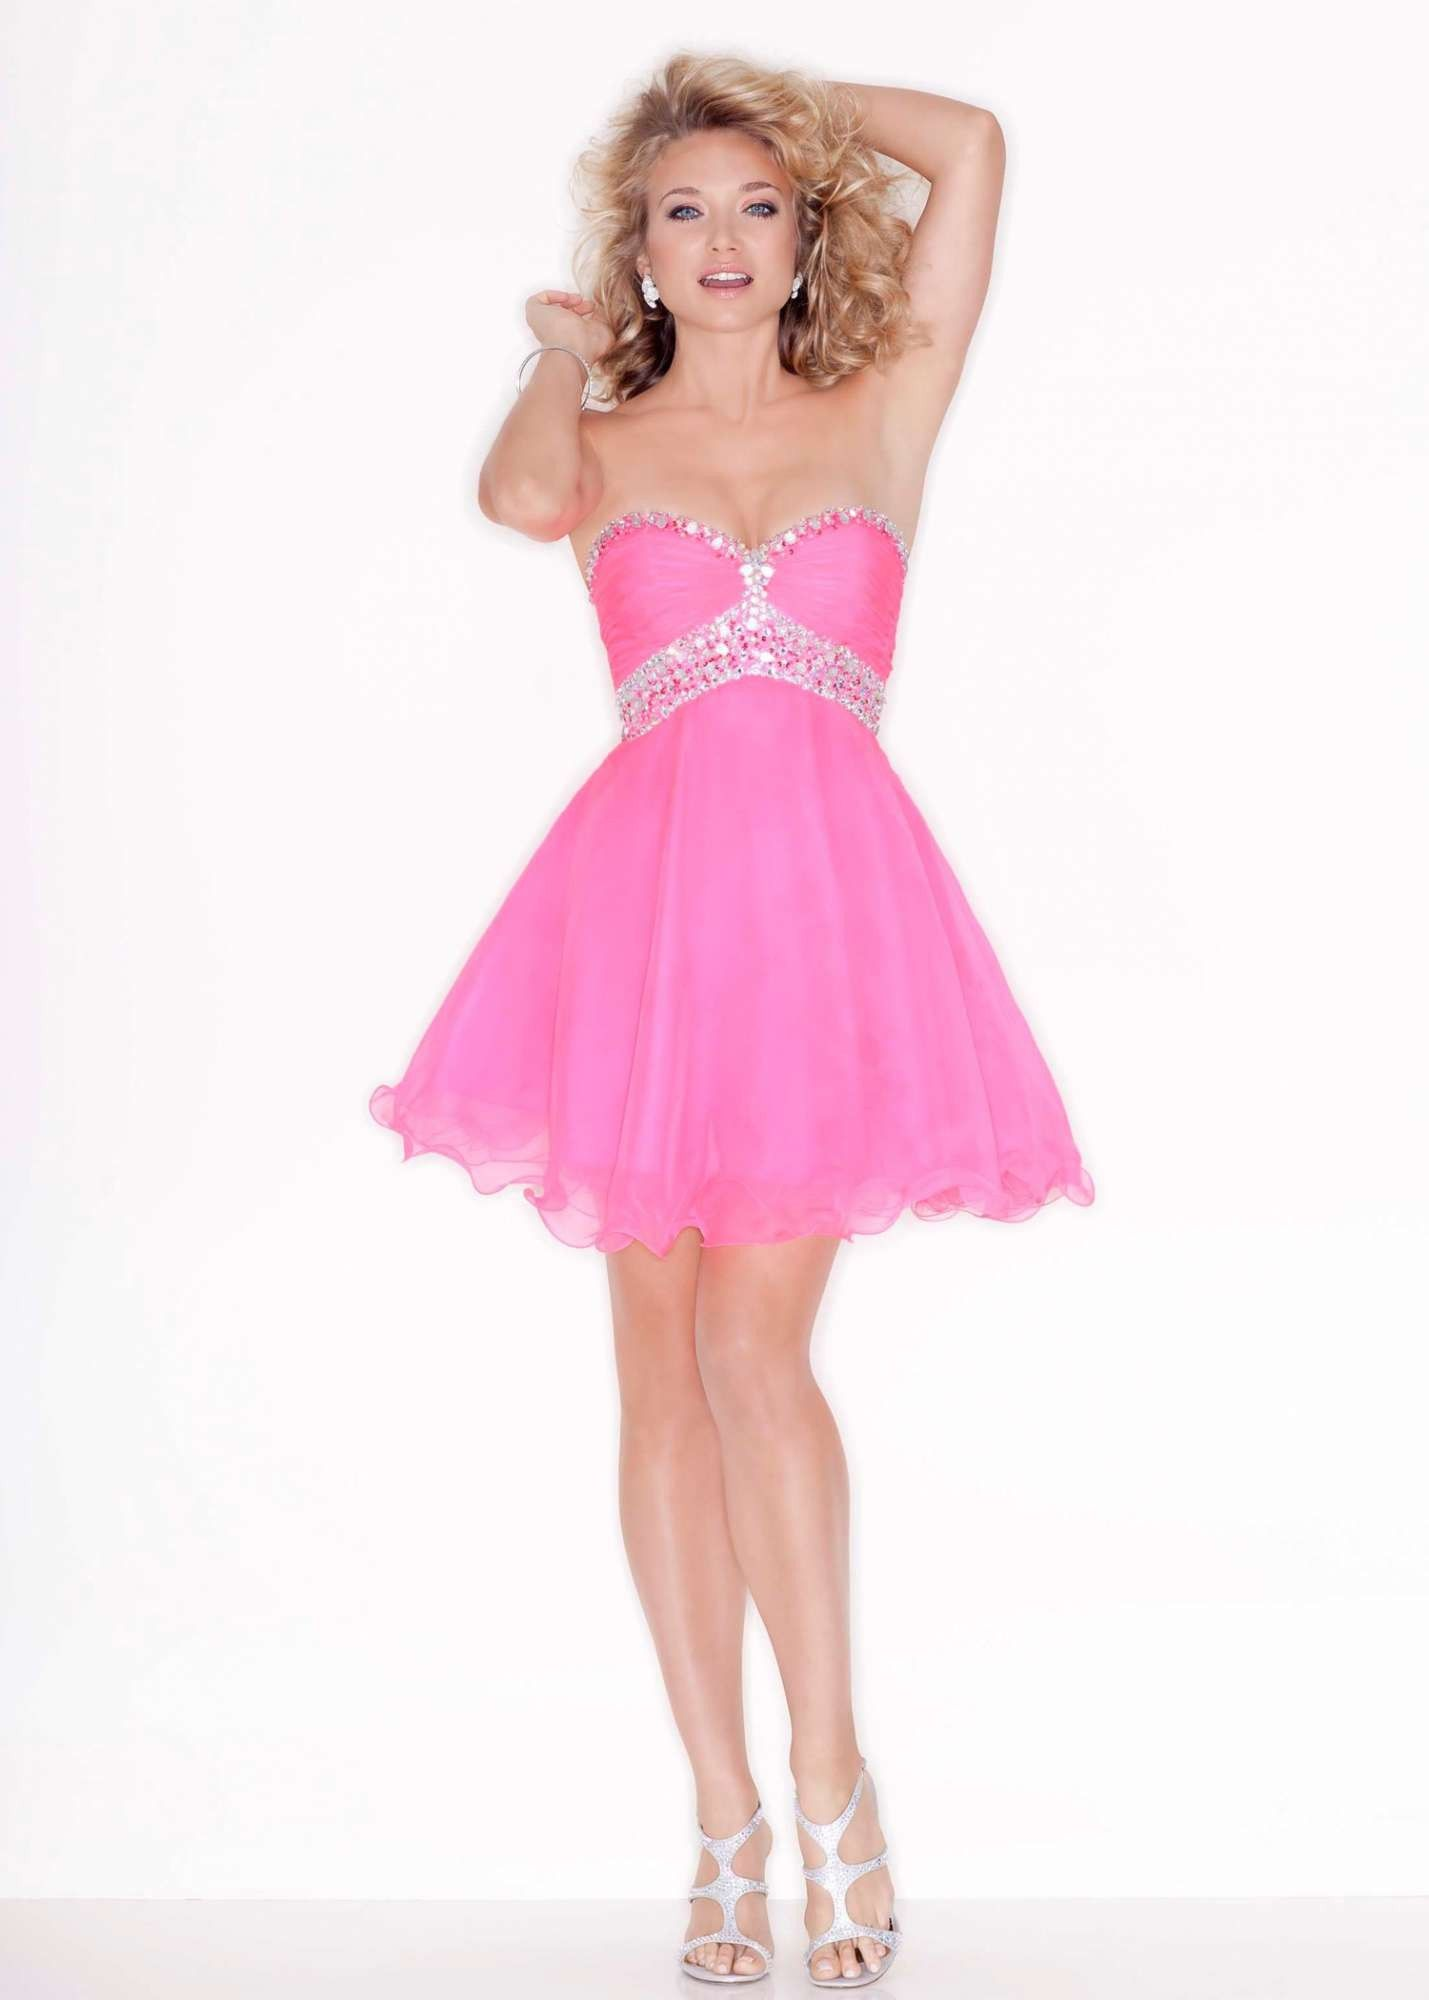 Sticks u stones by mori lee sexy party dress cute and pink